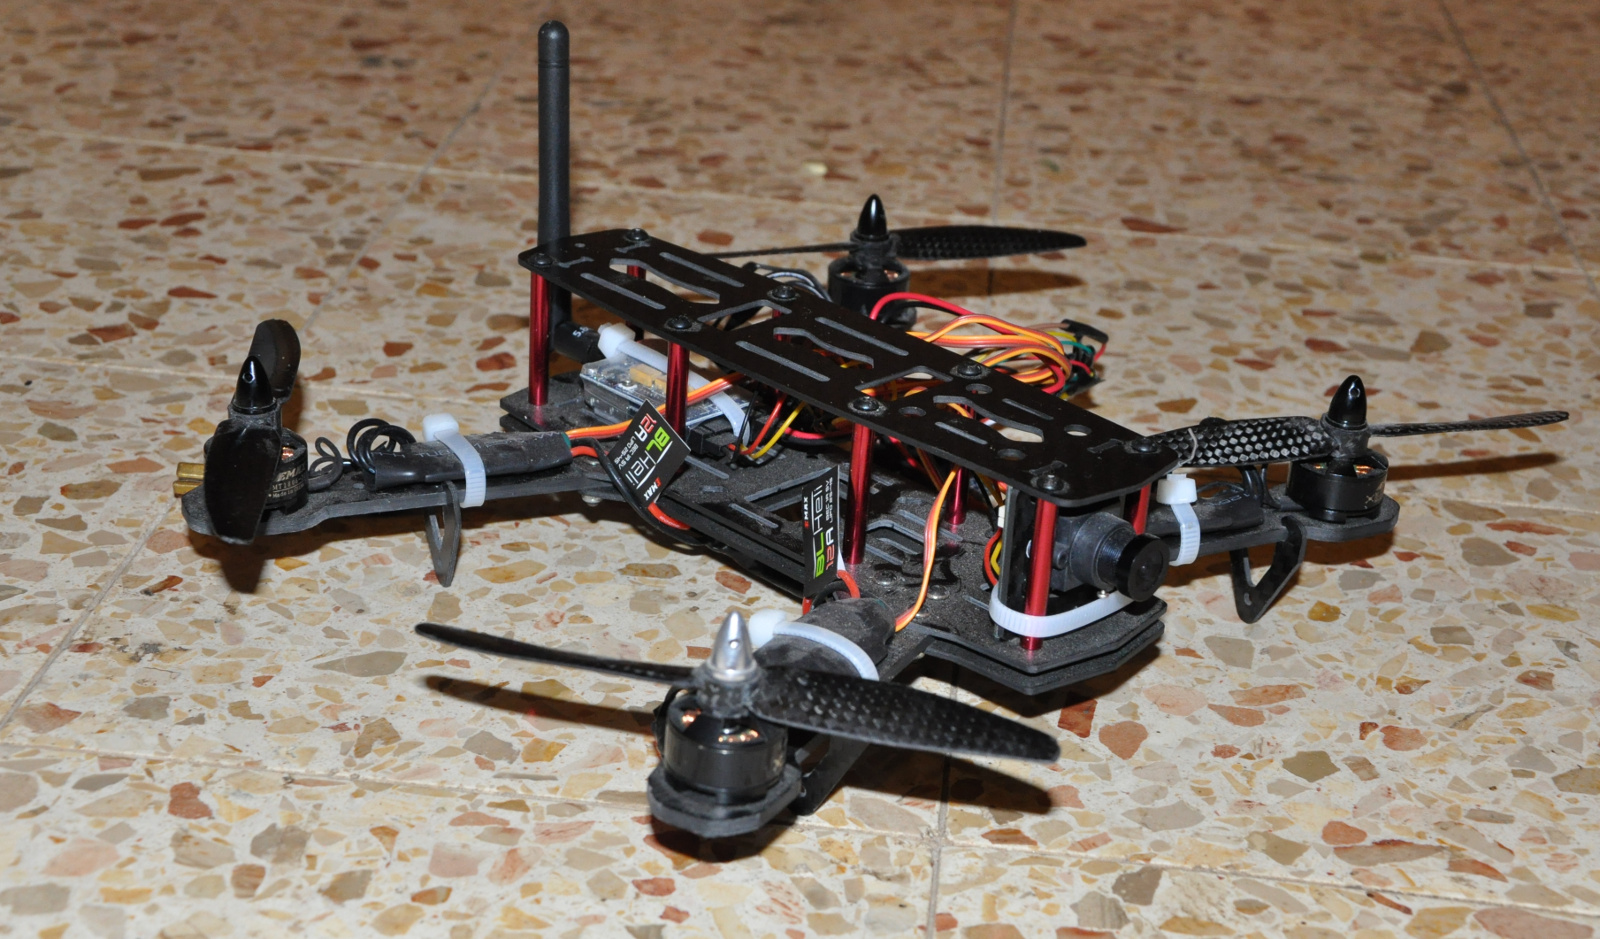 Picture of QAV250 Racing FPV Quadcopter